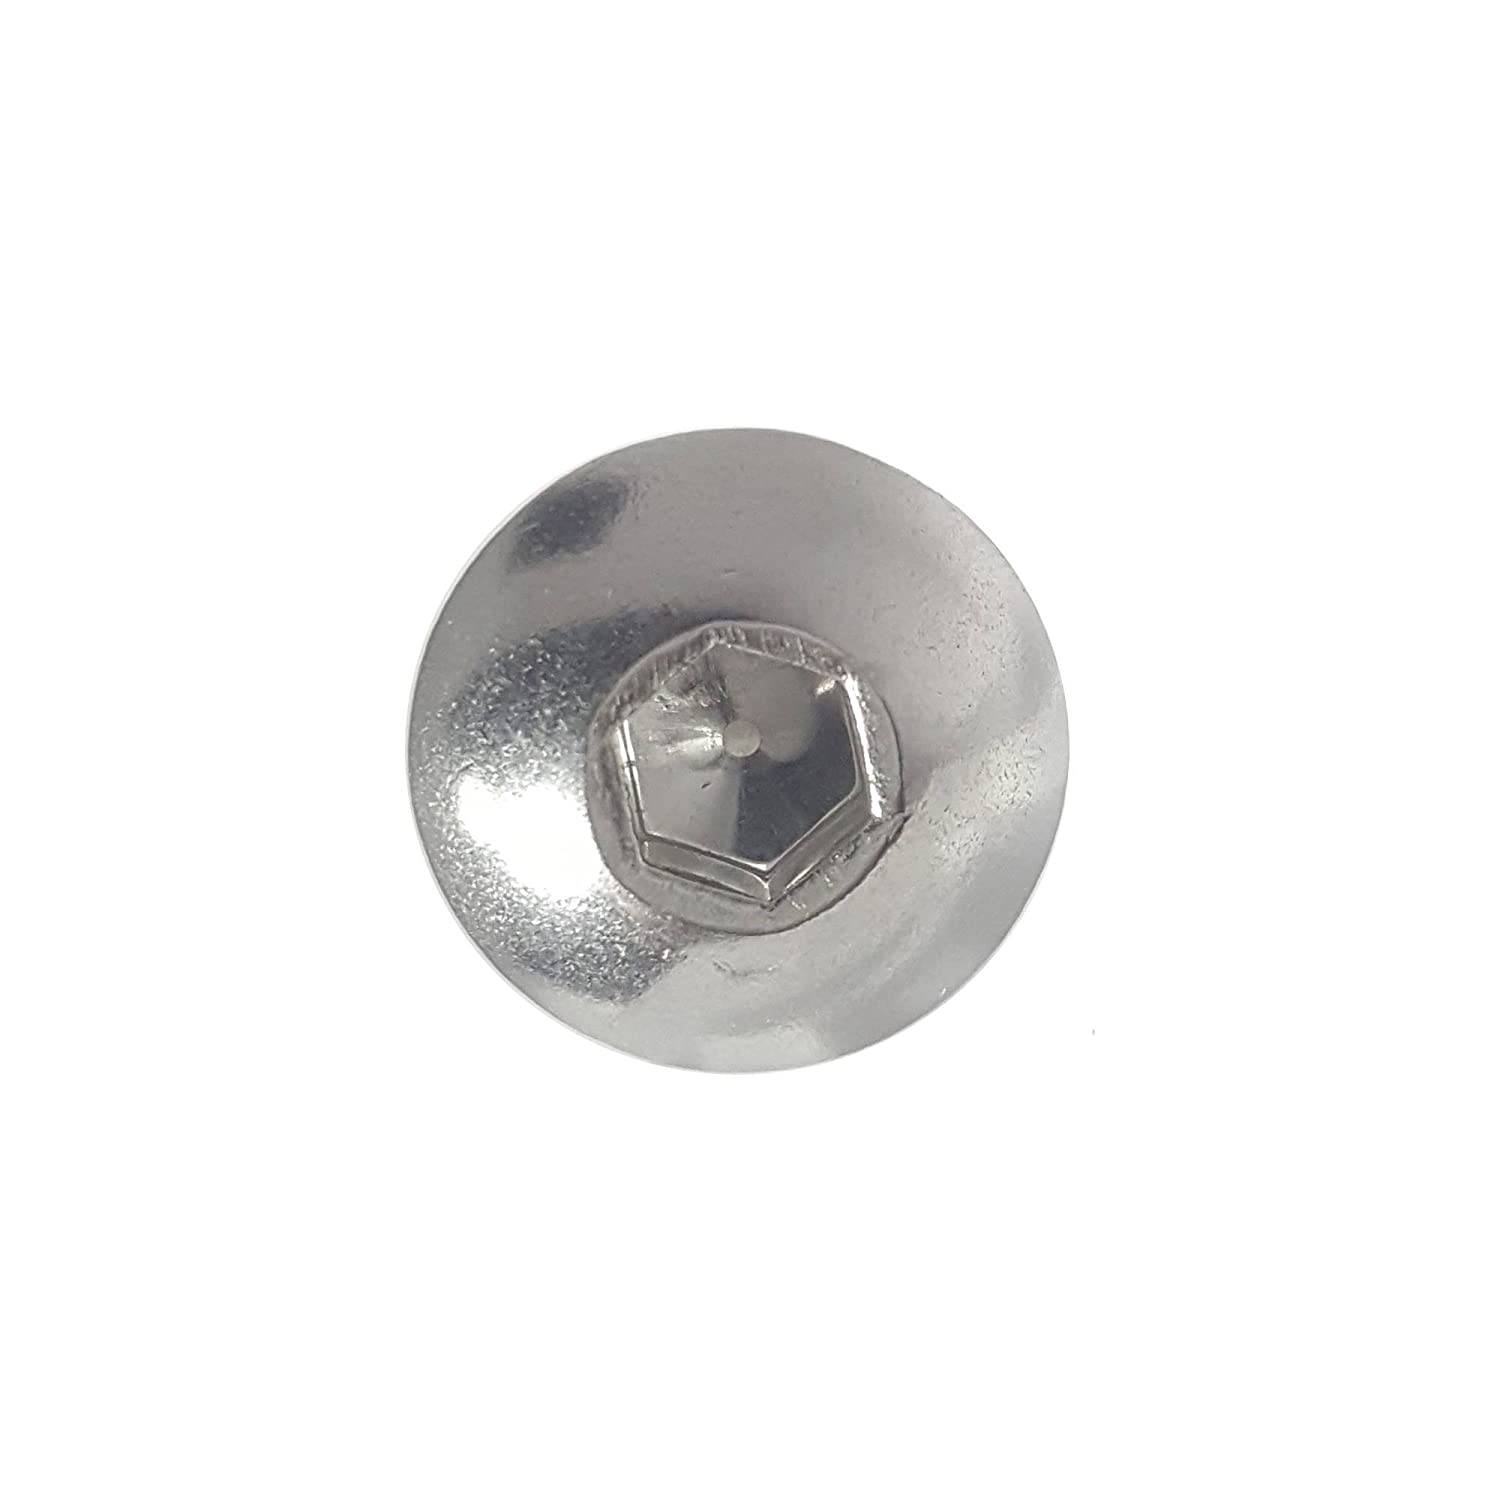 Allen Hex Drive By Fastenere Lightning Stainless Quantity 25 1//4-20 x 3 Button Head Socket Cap Screws 18-8 Stainless Steel